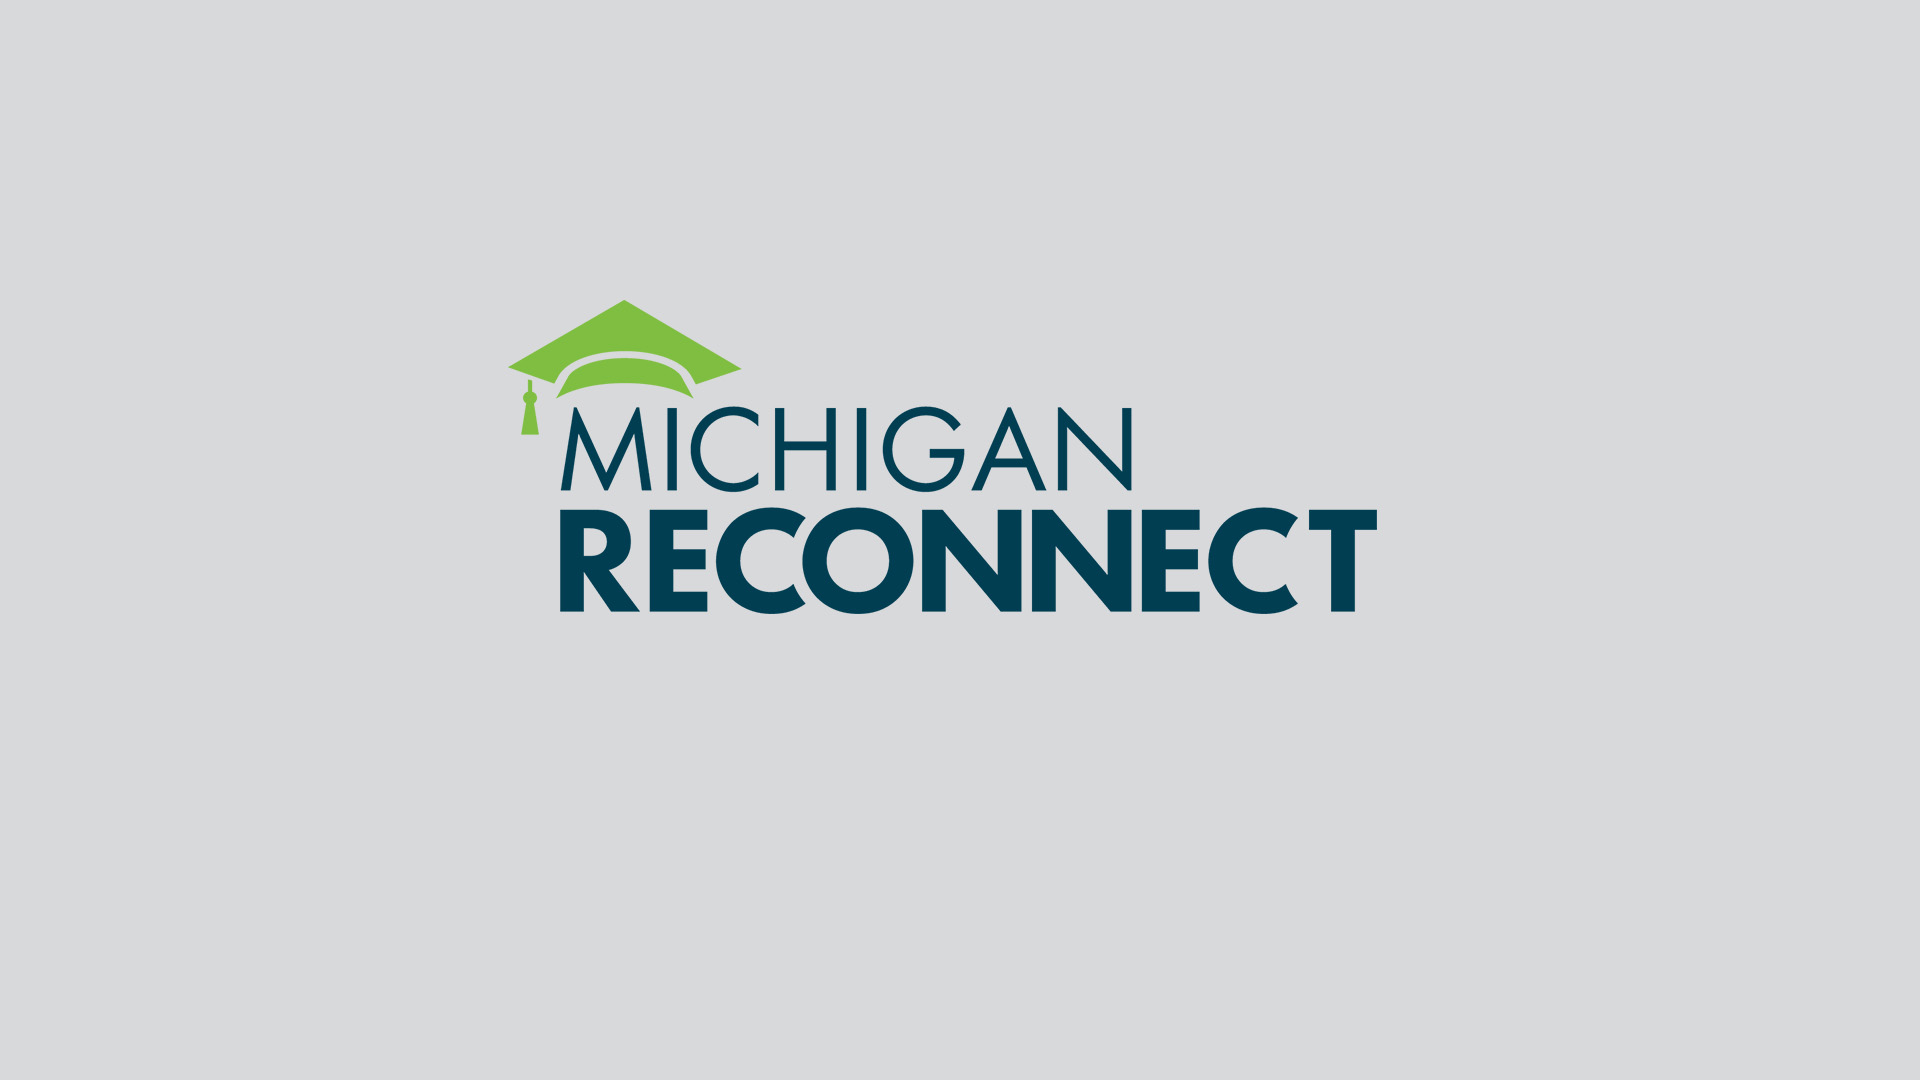 Logo for Michigan Reconnect